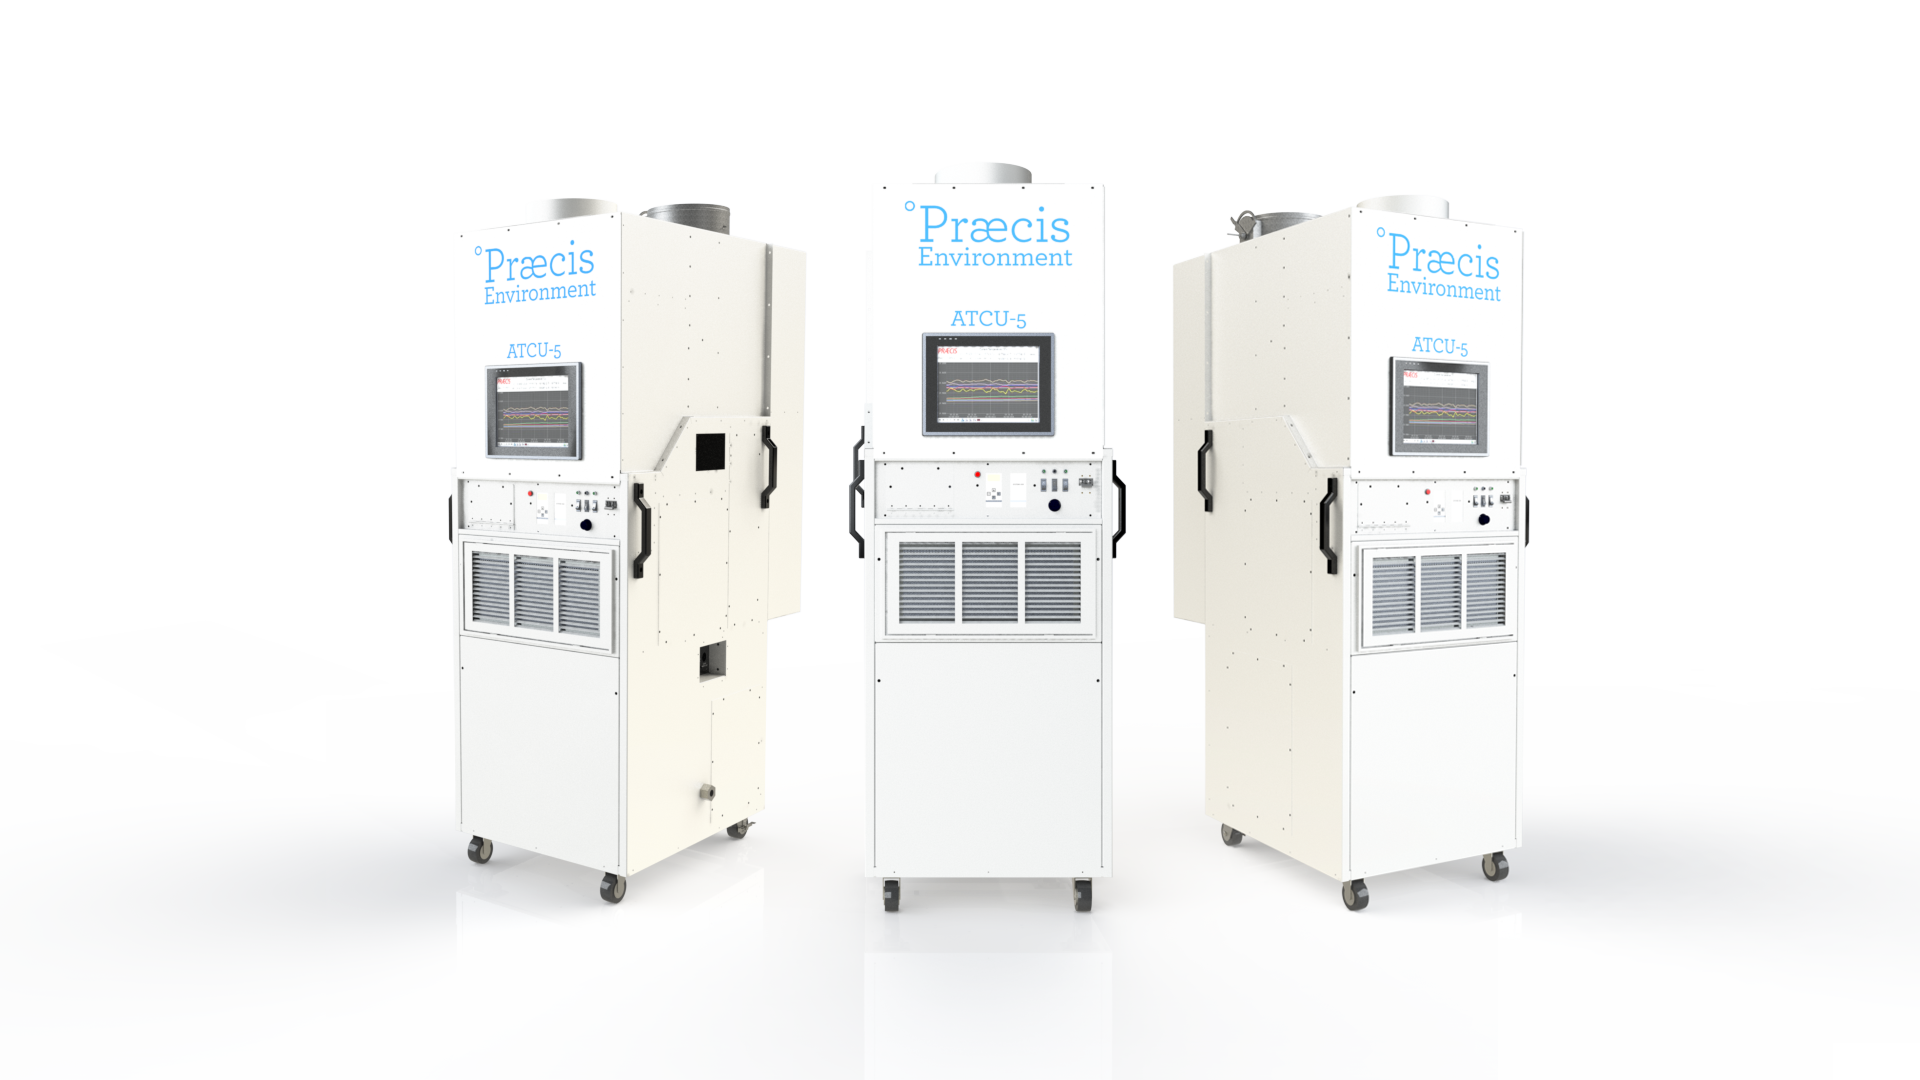 For best results in temperature control use Praecis.